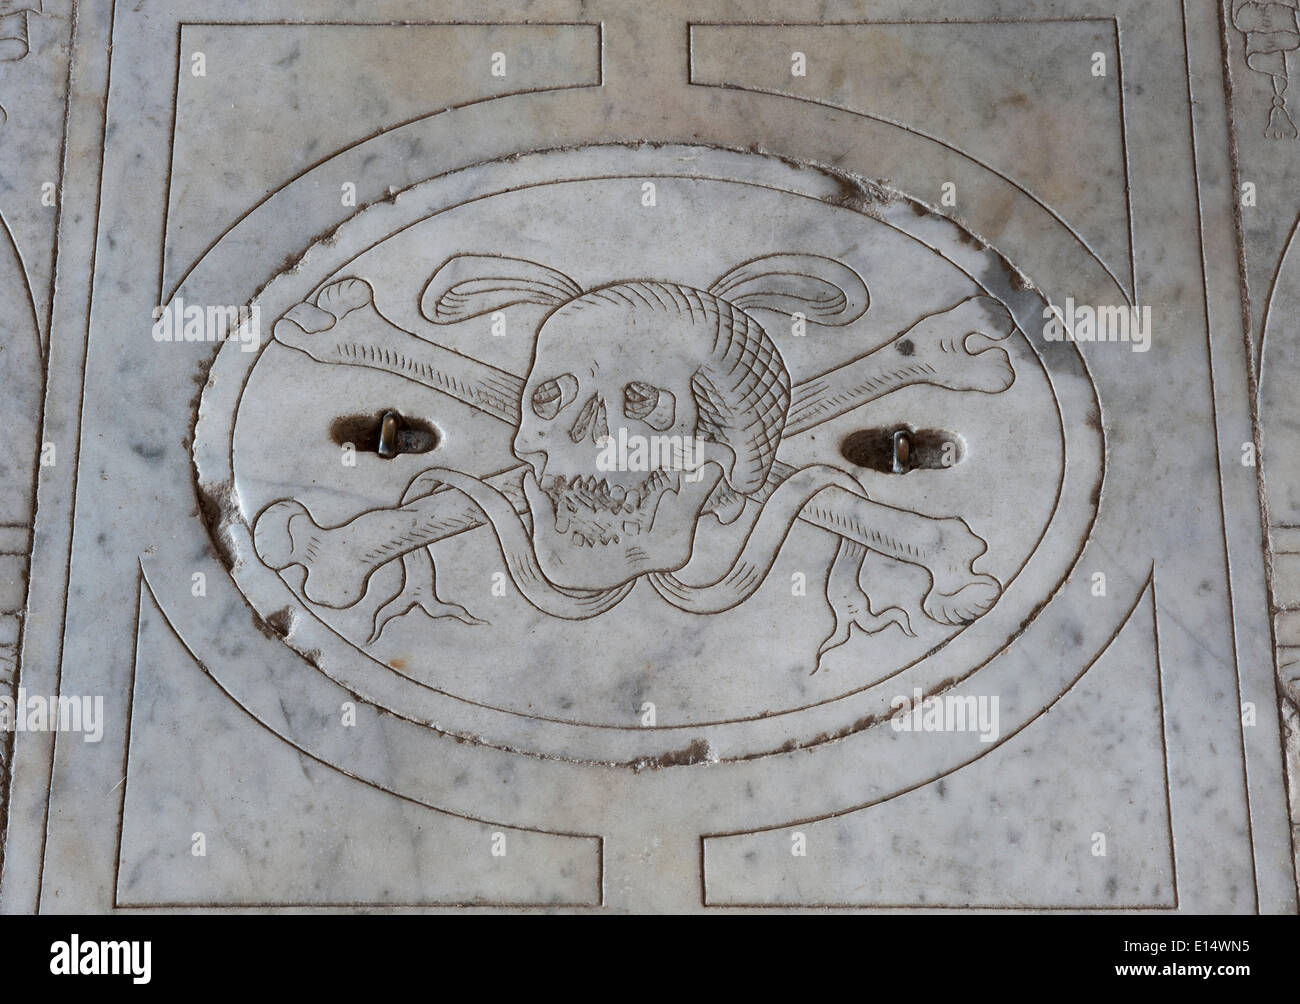 Marble slab with a skull relief, Church of Sant'Agostino, San Gimignano, Tuscany, Italy - Stock Image